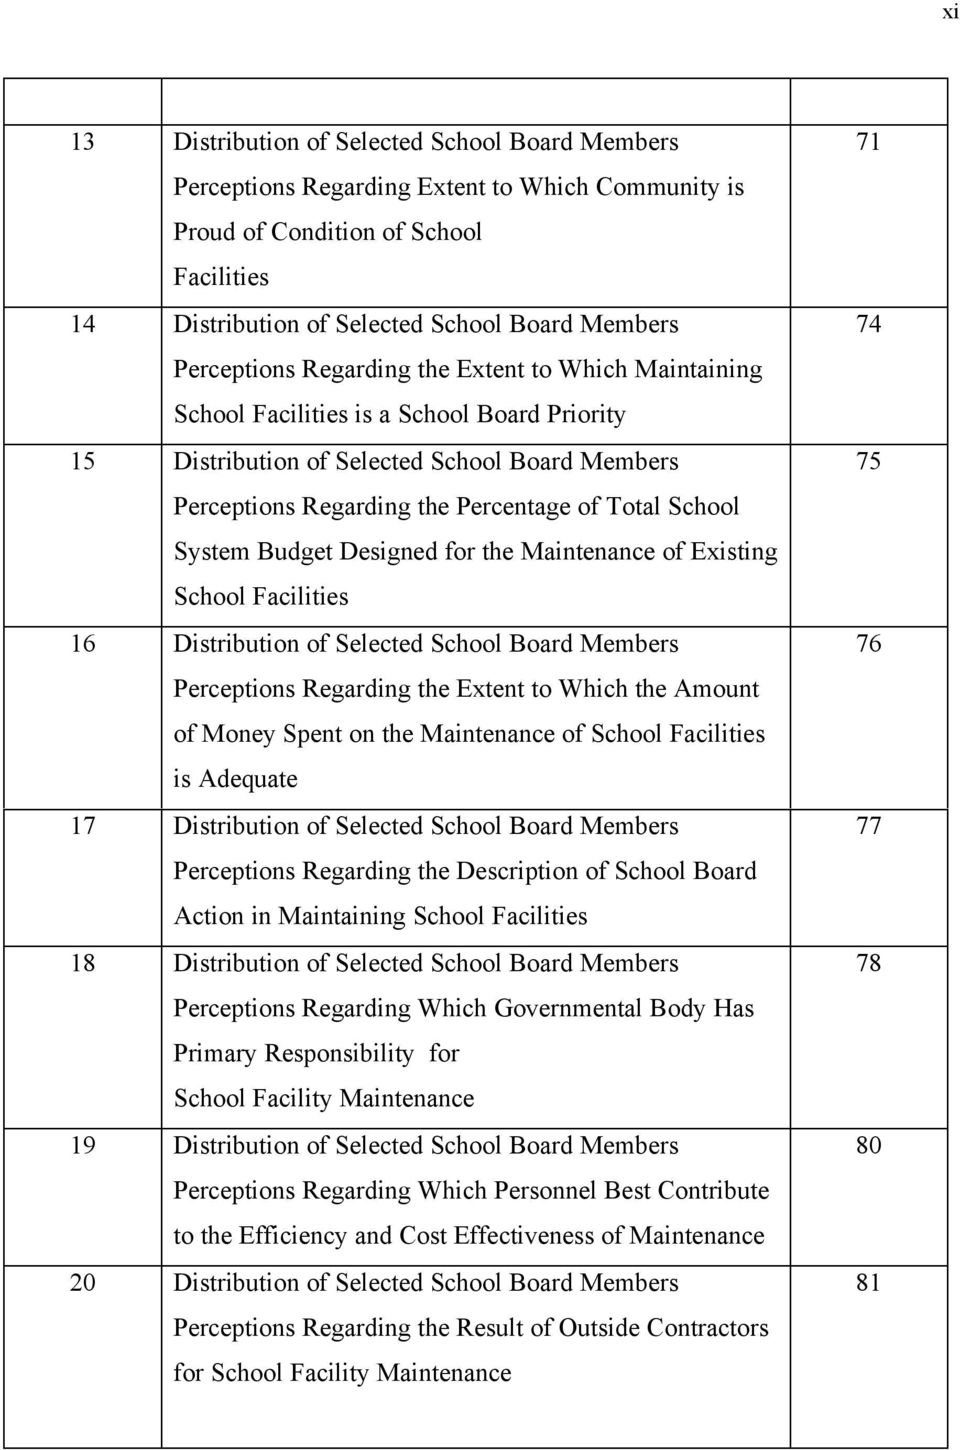 School System Budget Designed for the Maintenance of Existing School Facilities 16 Distribution of Selected School Board Members Perceptions Regarding the Extent to Which the Amount of Money Spent on